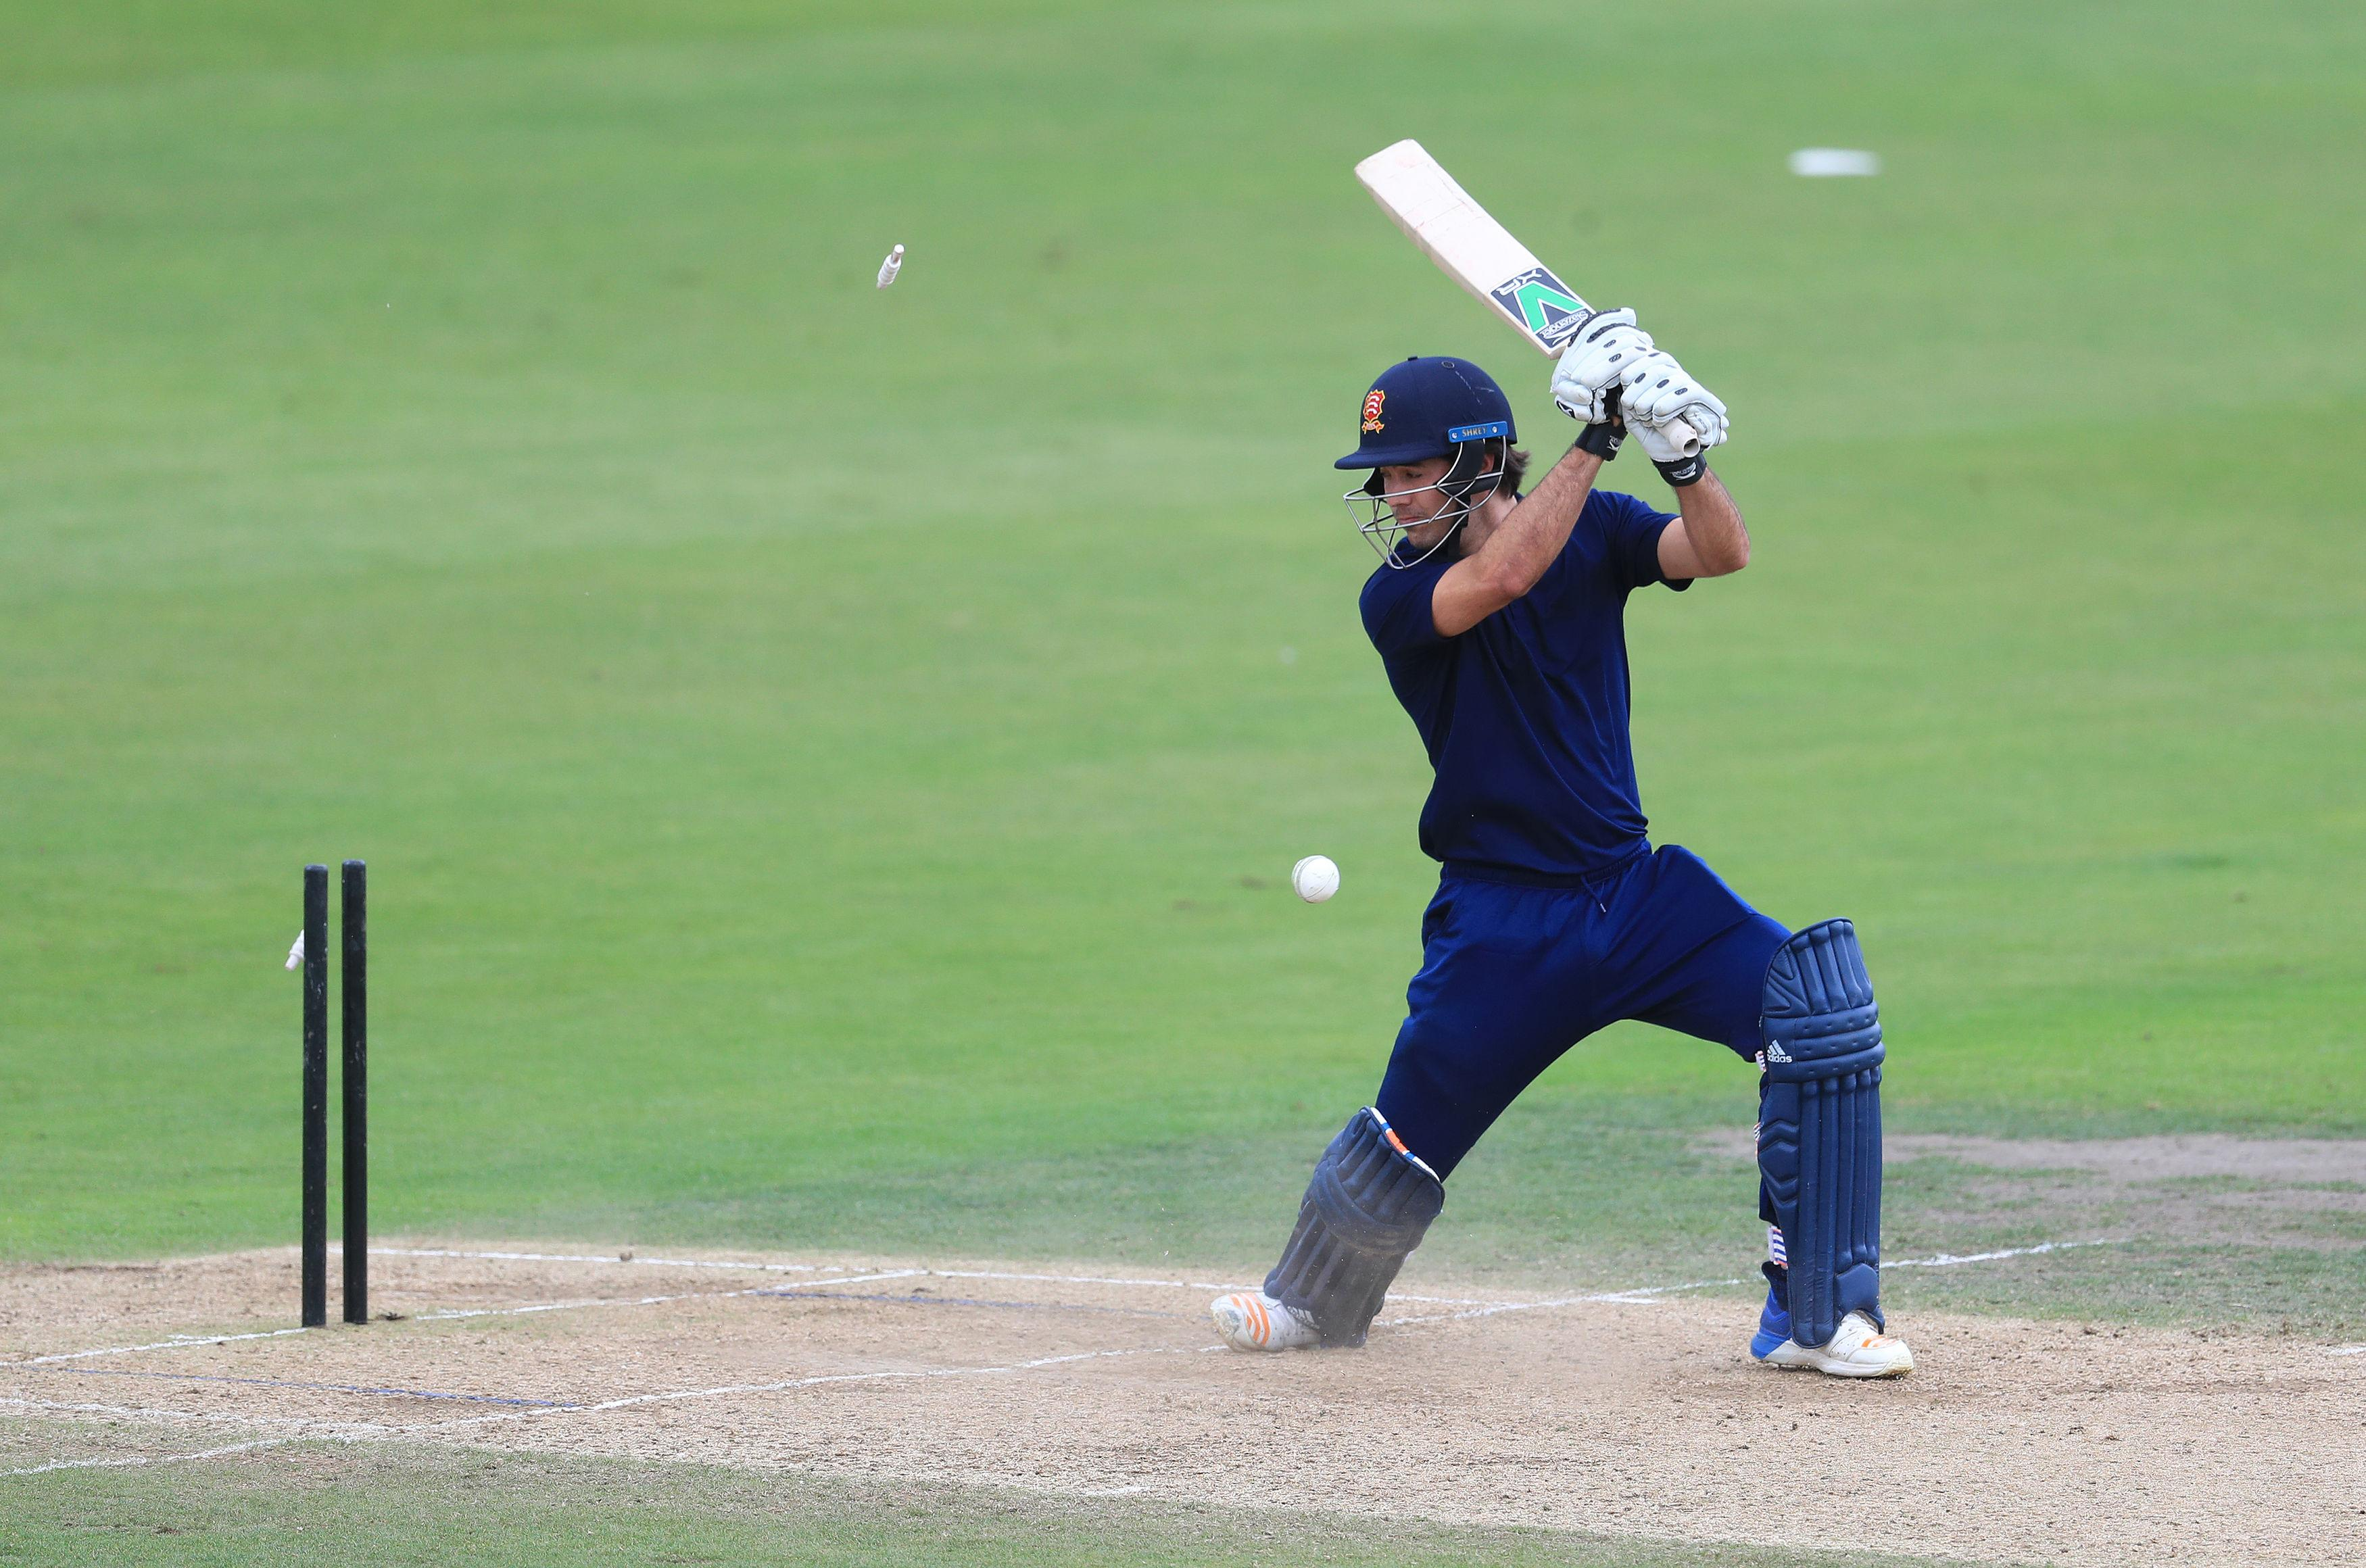 South's Matt Dixon is clean bowled during the 100 Ball Trial match at Trent Bridge